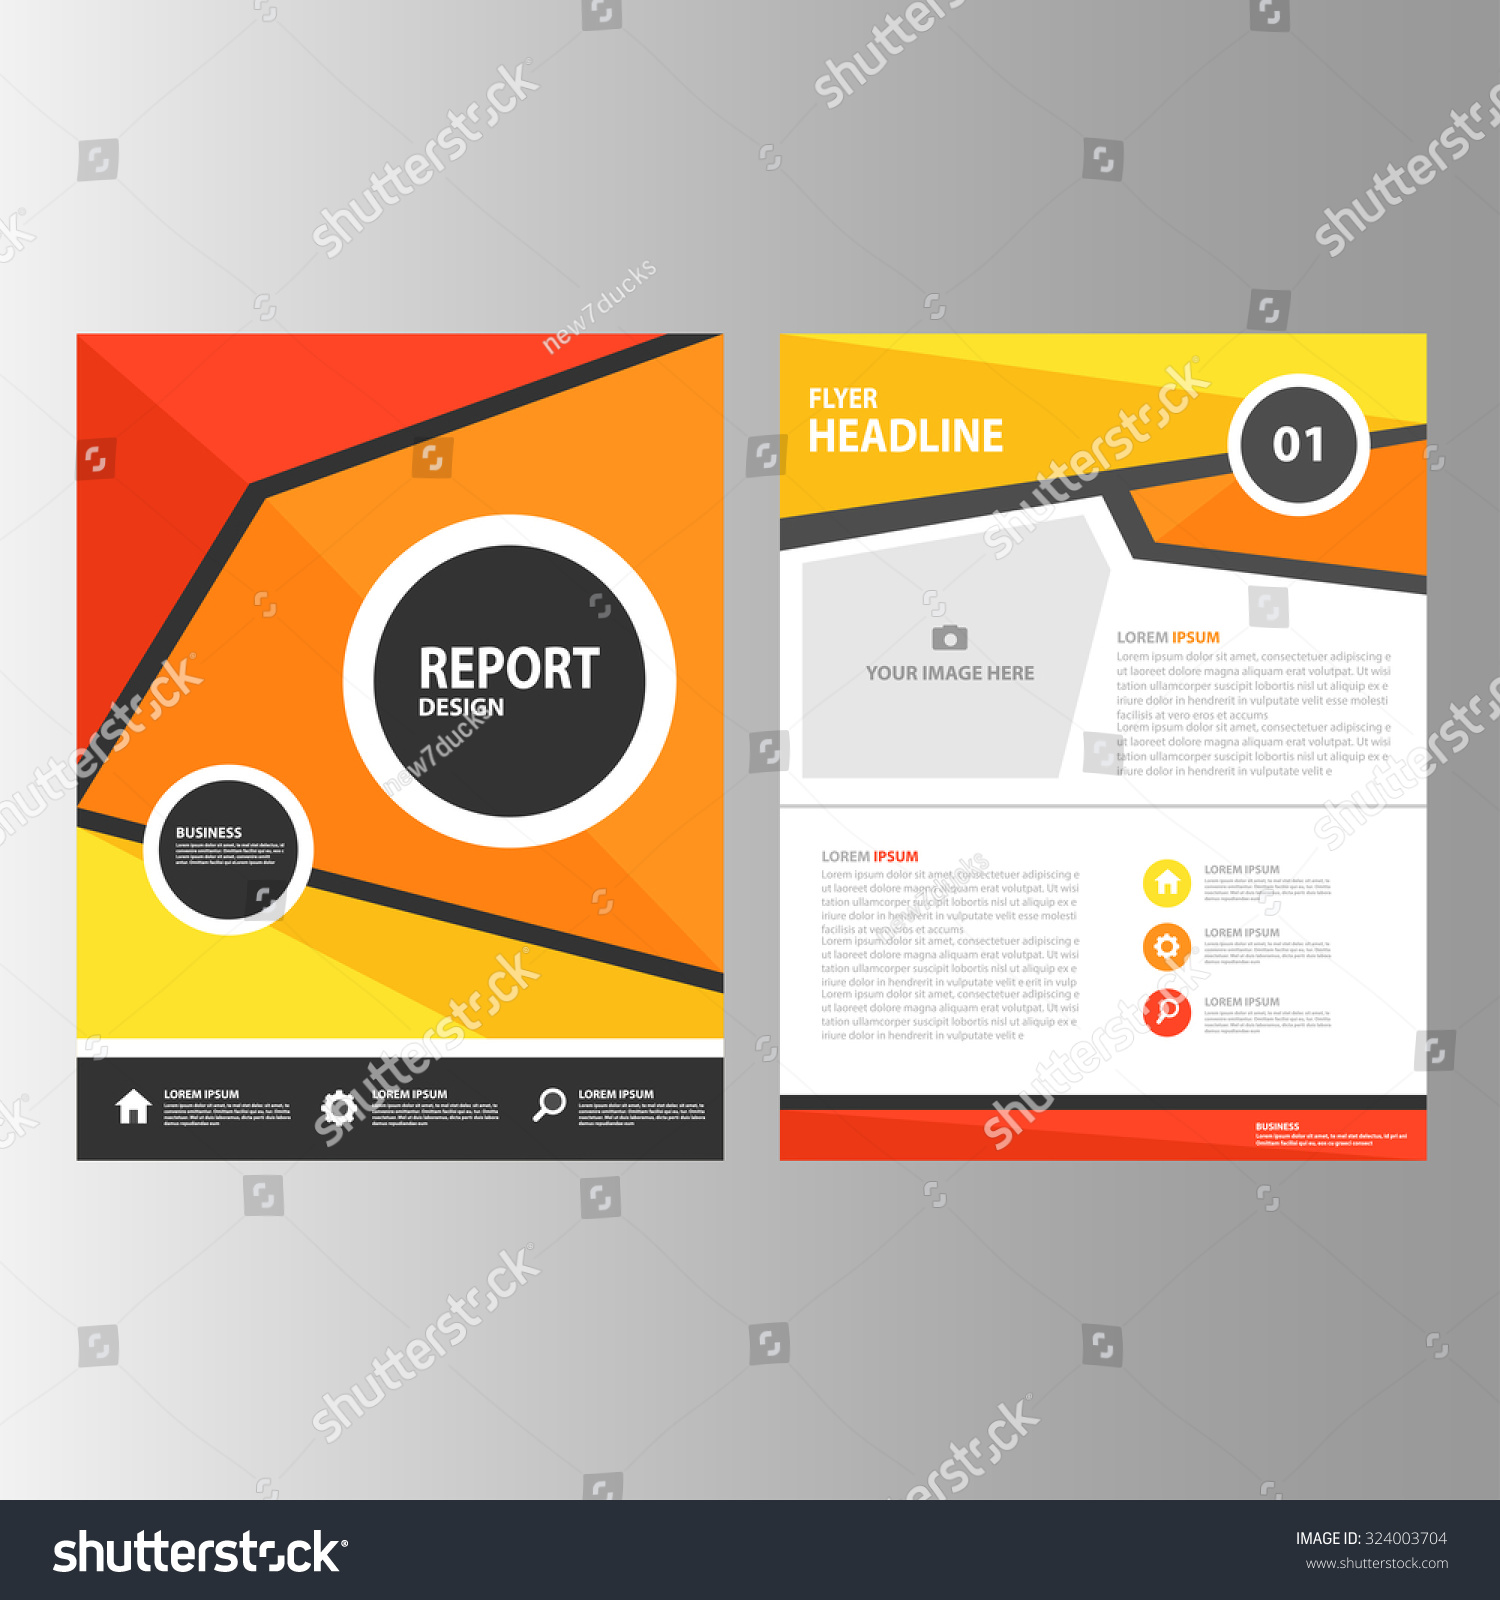 red orange yellow abstract annual report stock vector 324003704 red orange yellow abstract annual report brochure flyer template layout design a4 size for marketing advertising